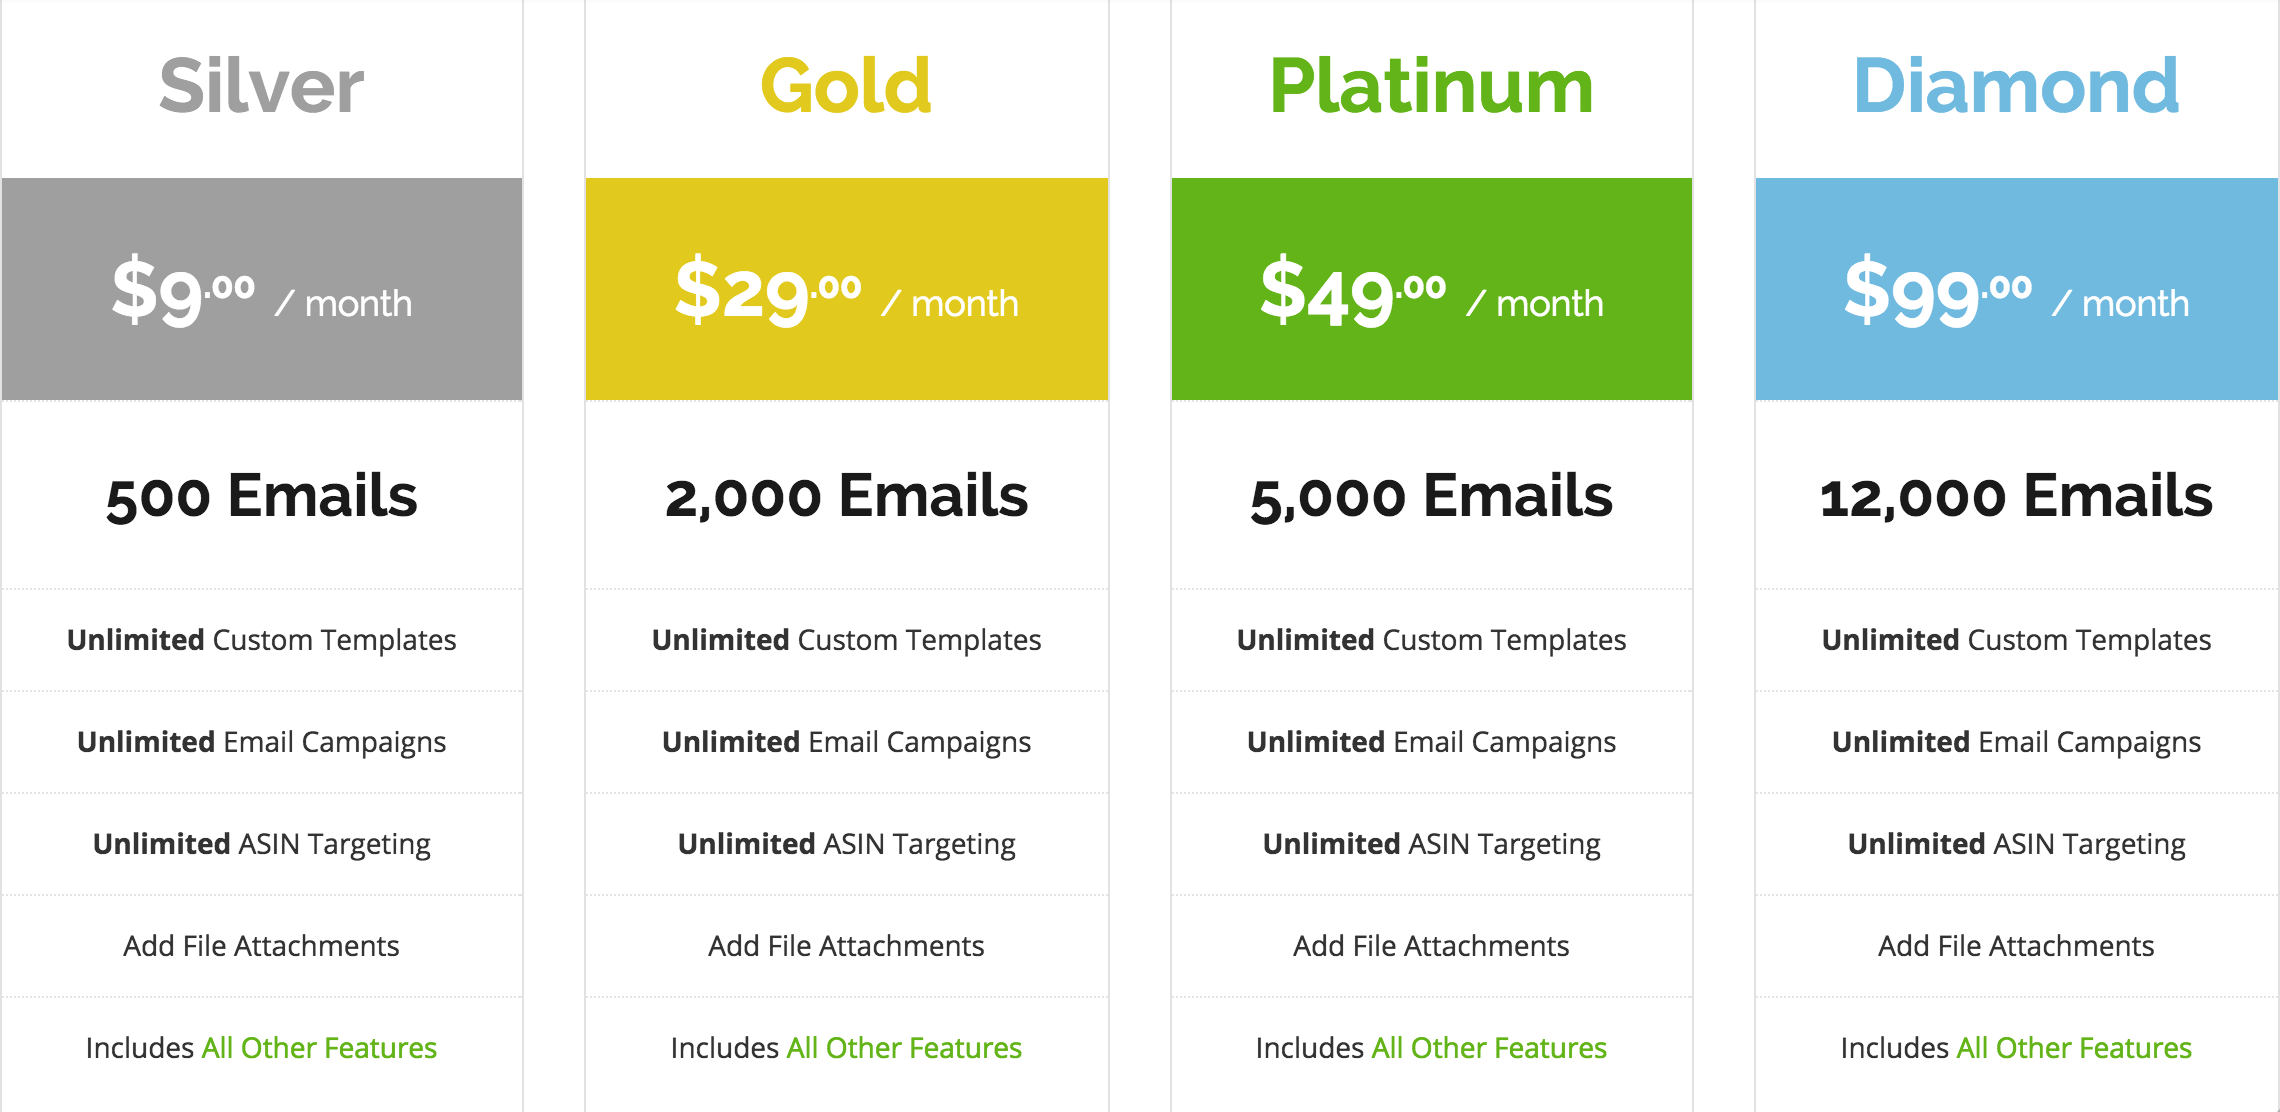 FeedbackZ Pricing